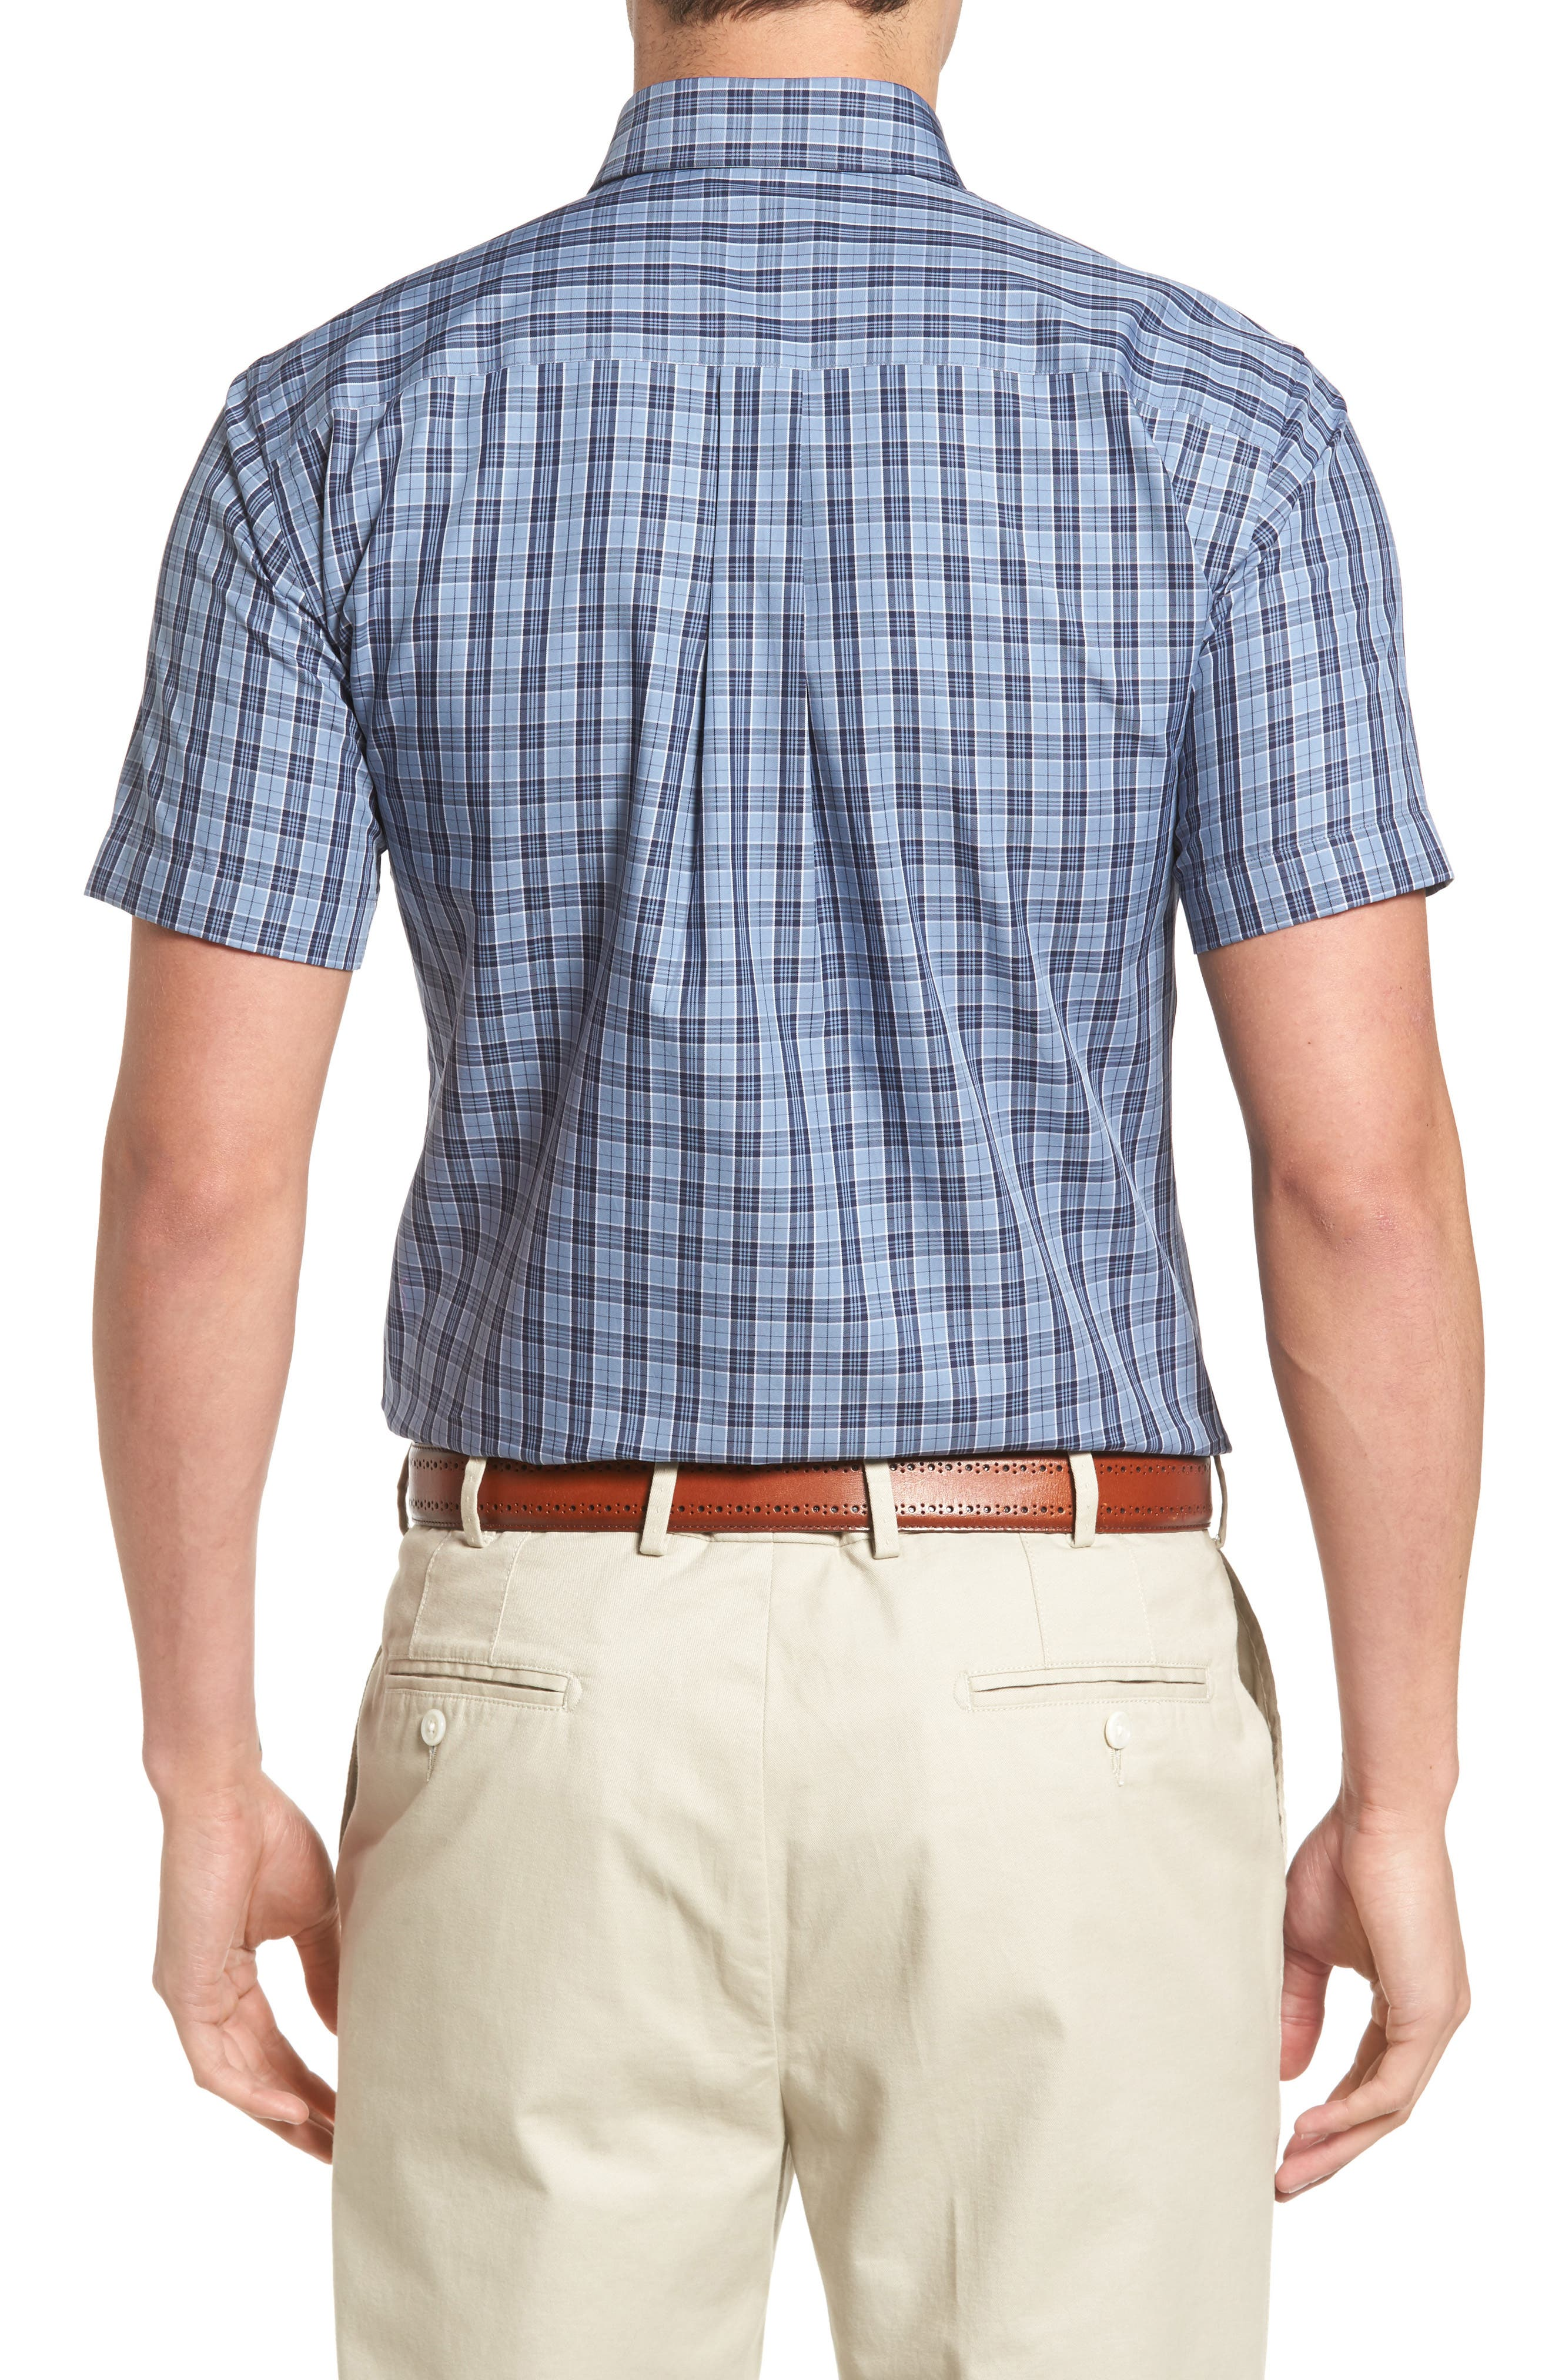 Regular Fit Short Sleeve Stormy Plaid Sport Shirt,                             Alternate thumbnail 2, color,                             439